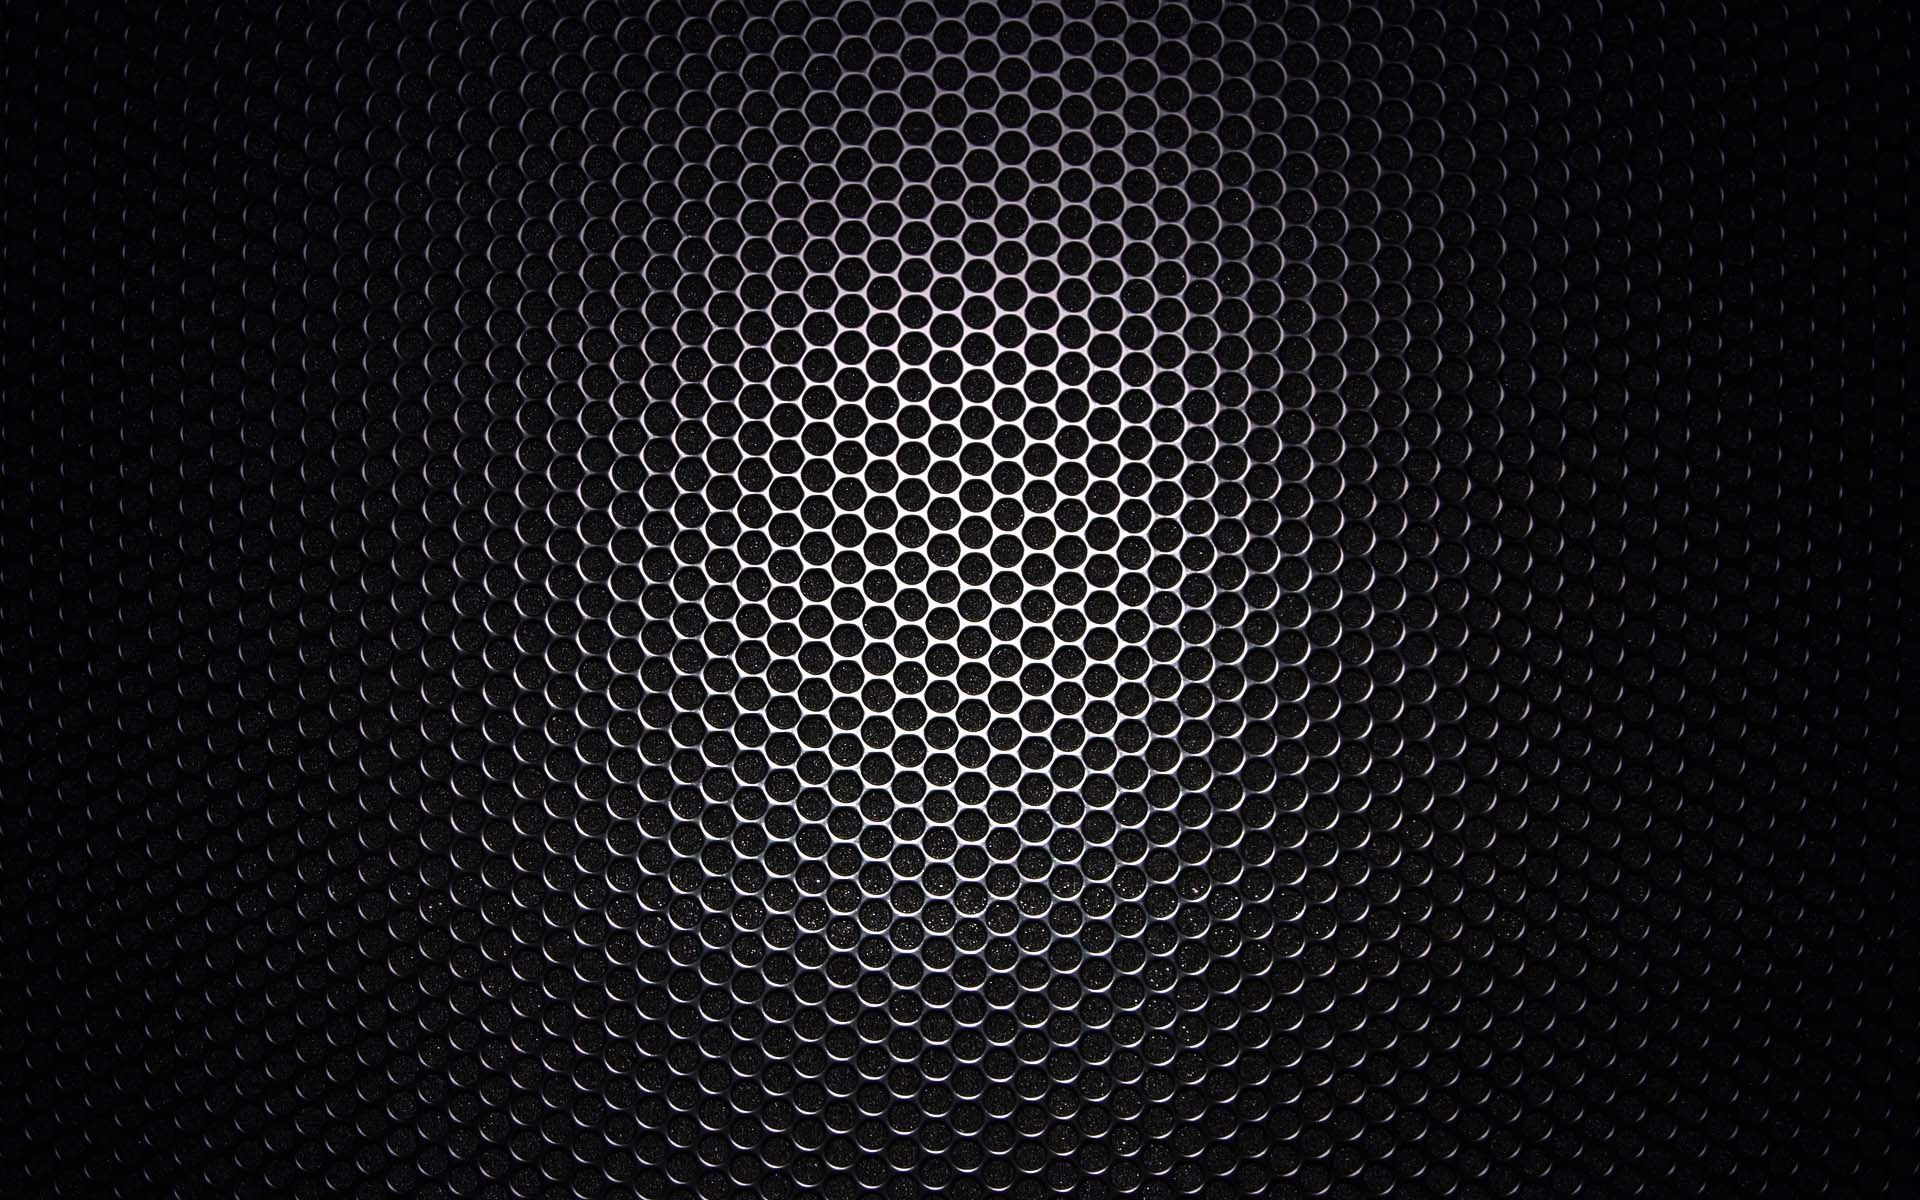 Pin by Robin Wu on Speaker Mesh Pure black wallpaper Full black 1920x1200